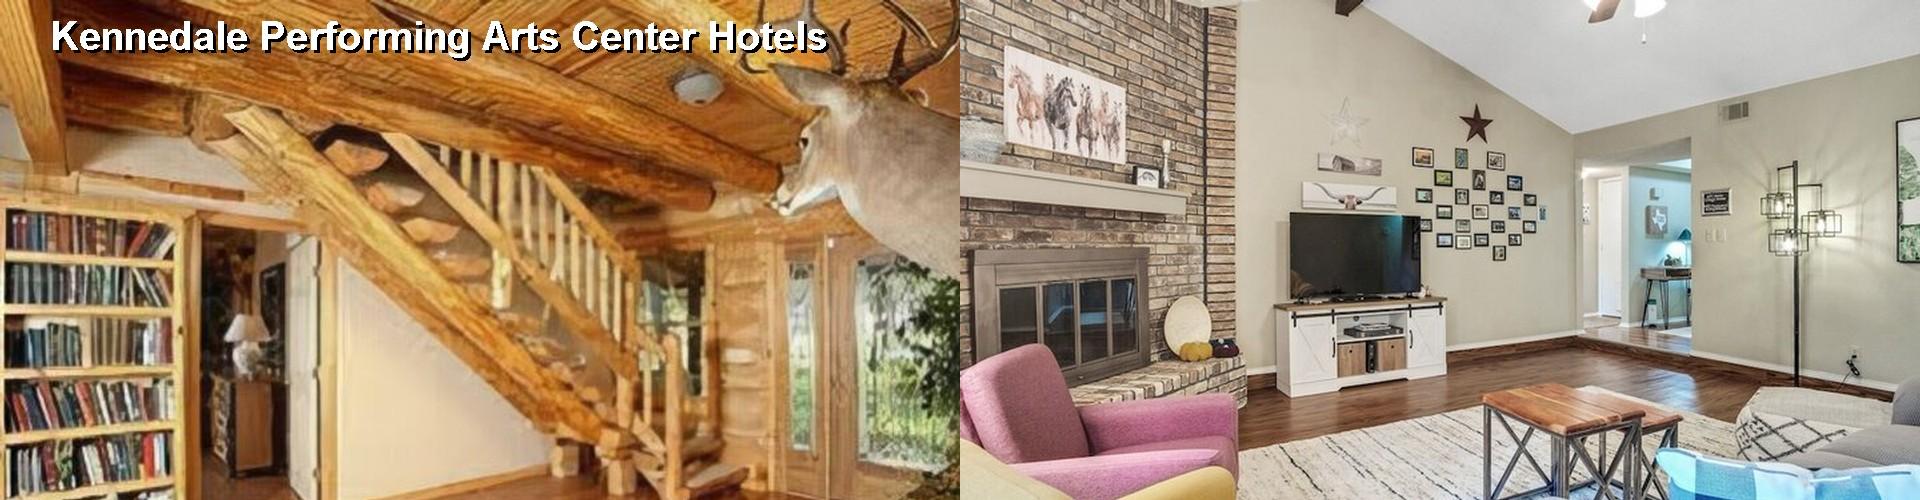 5 Best Hotels near Kennedale Performing Arts Center